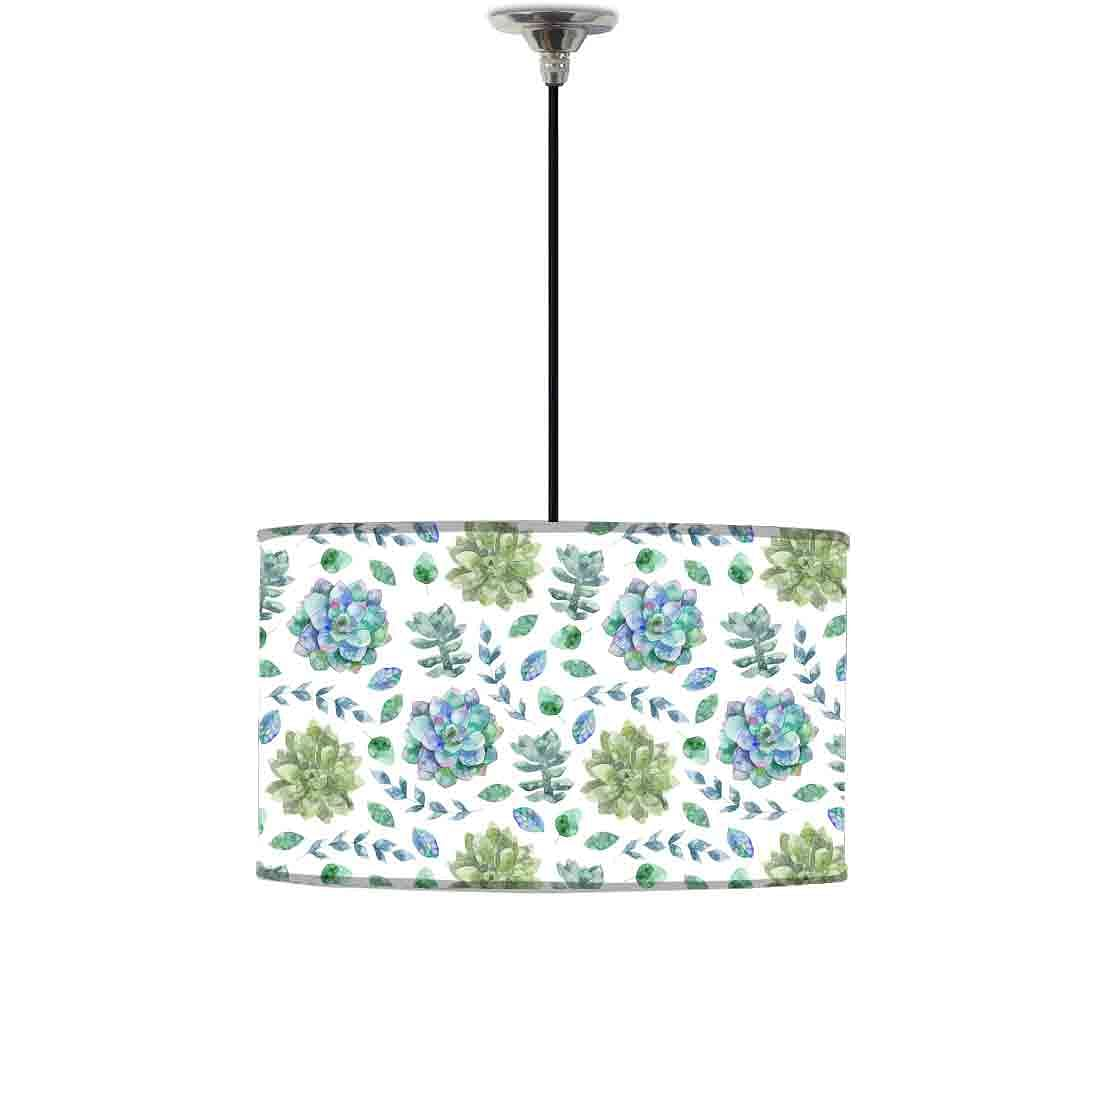 Ceiling Lamp Hanging Drum Lampshade - Green Flower